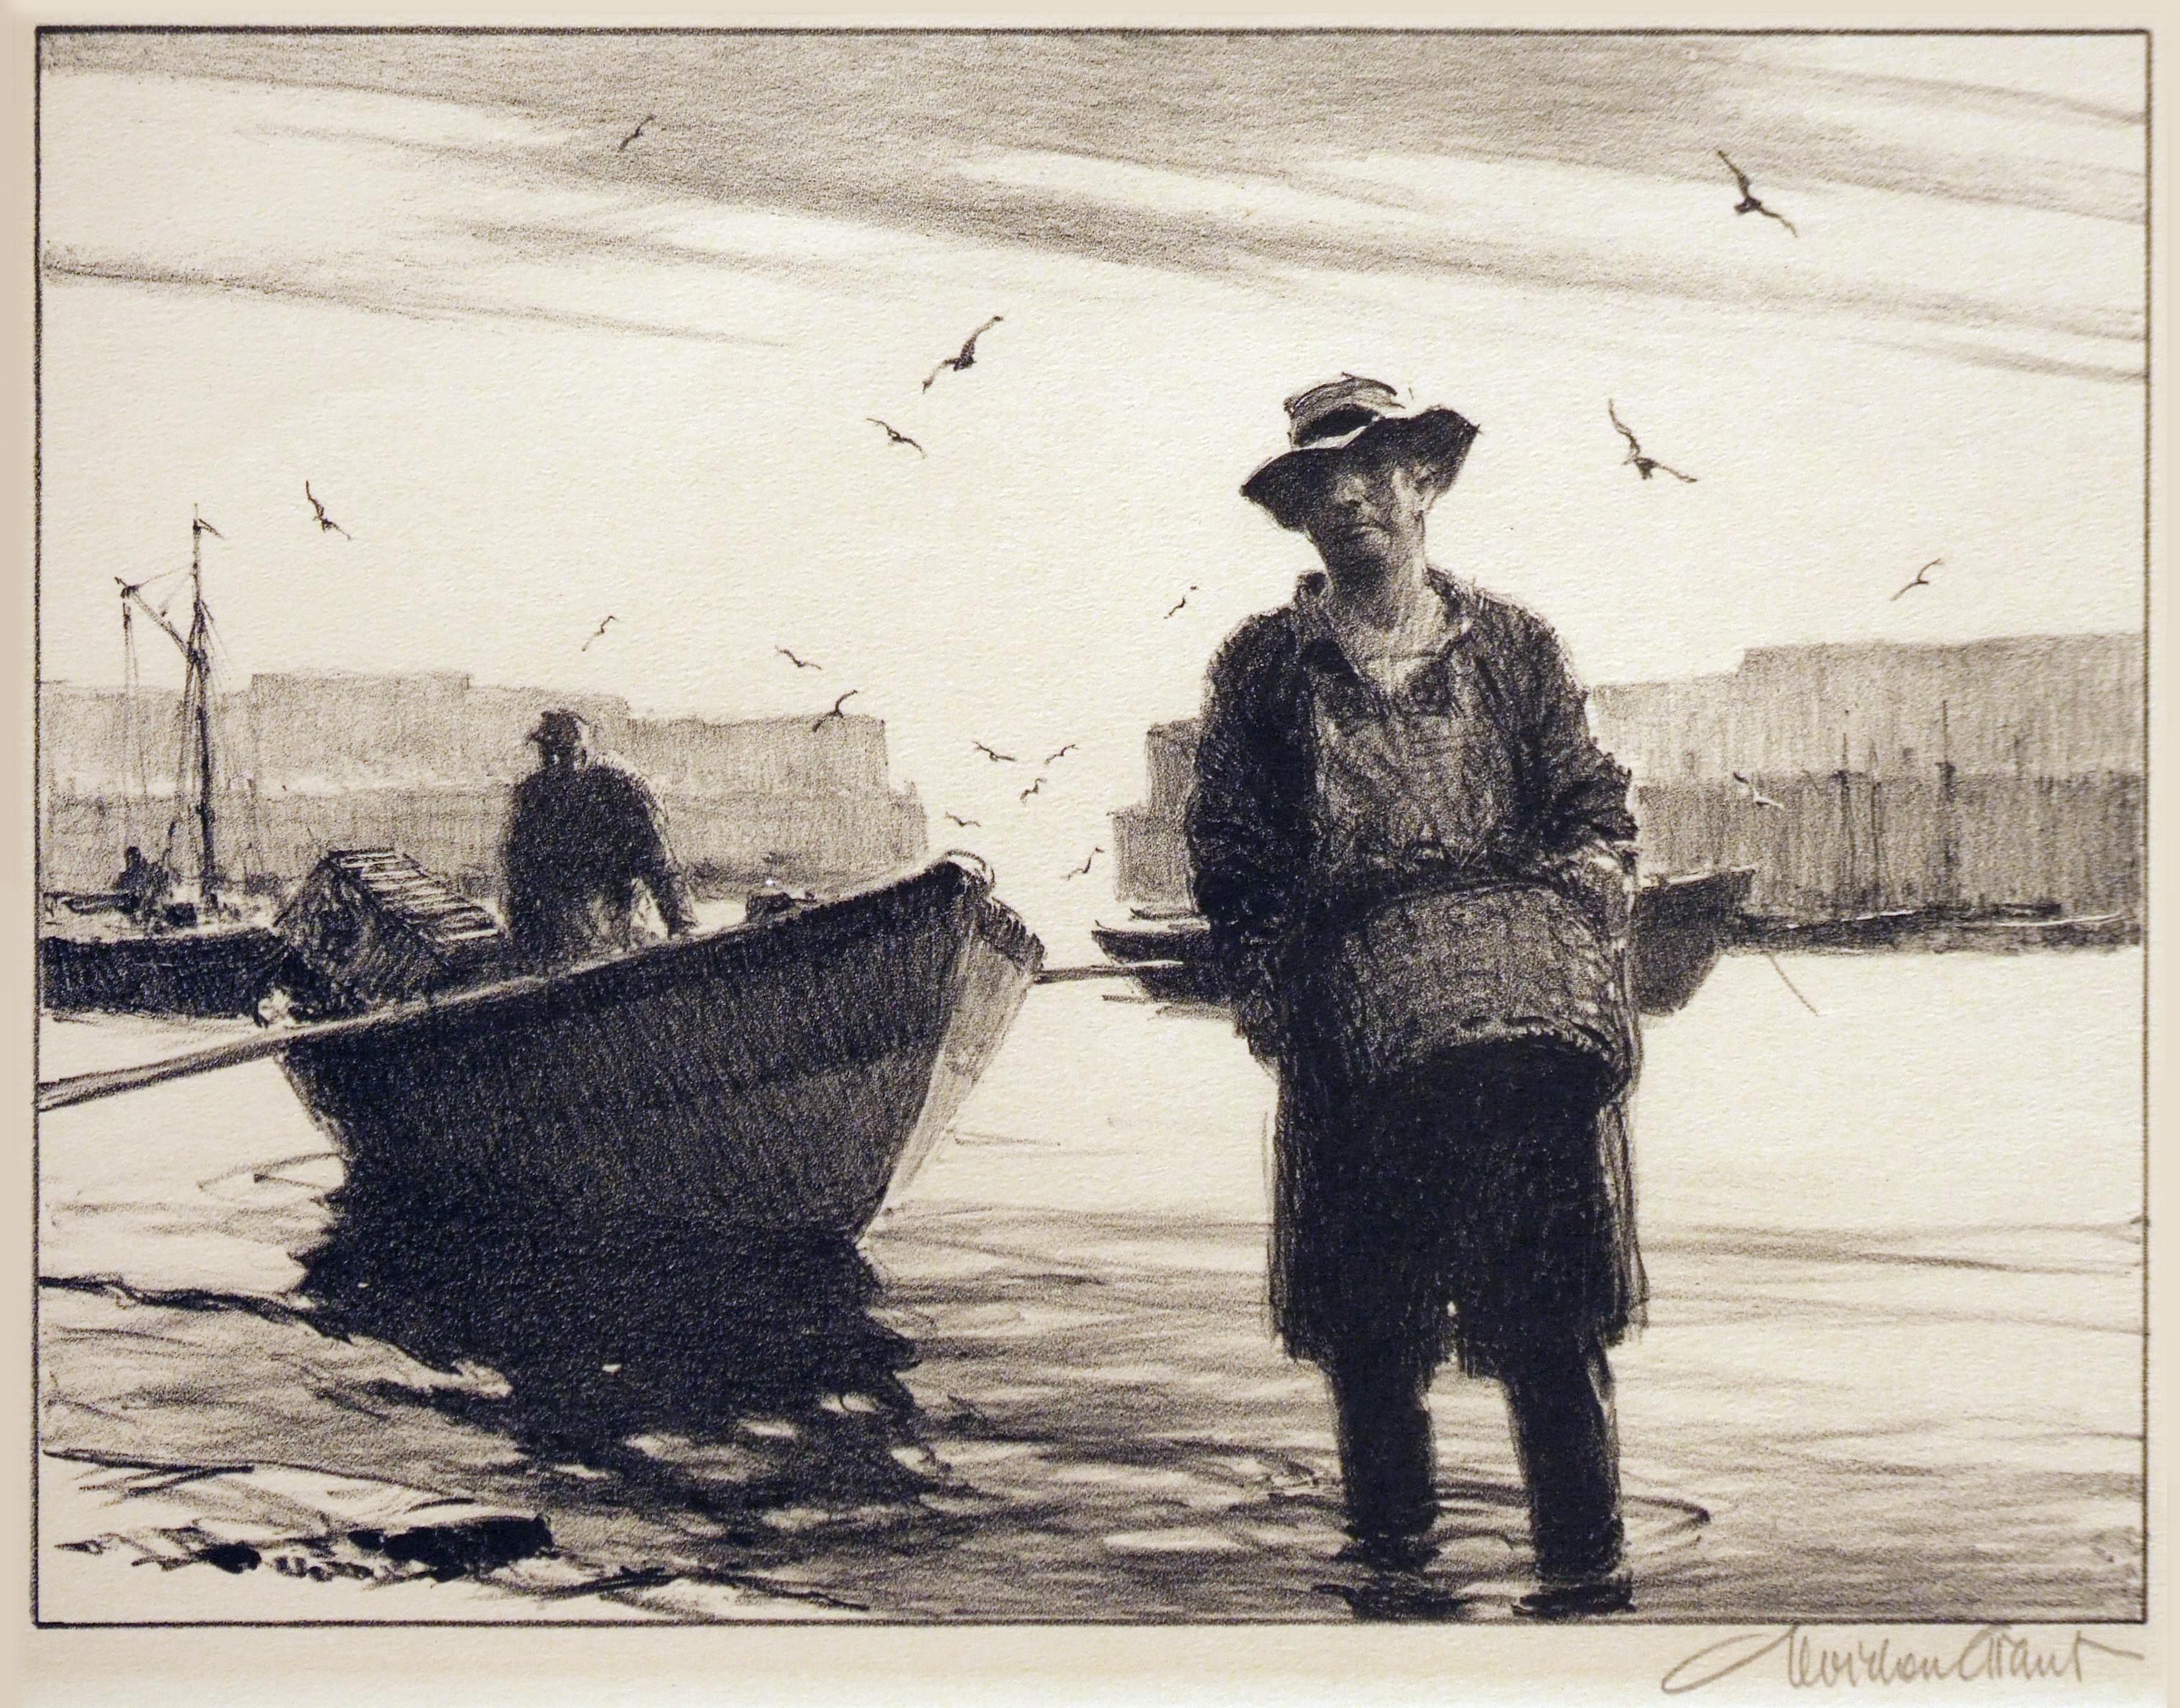 2005.005 | Gordon Grant | ANY LOBSTERS TODAY? | lithograph | 9 x 12"